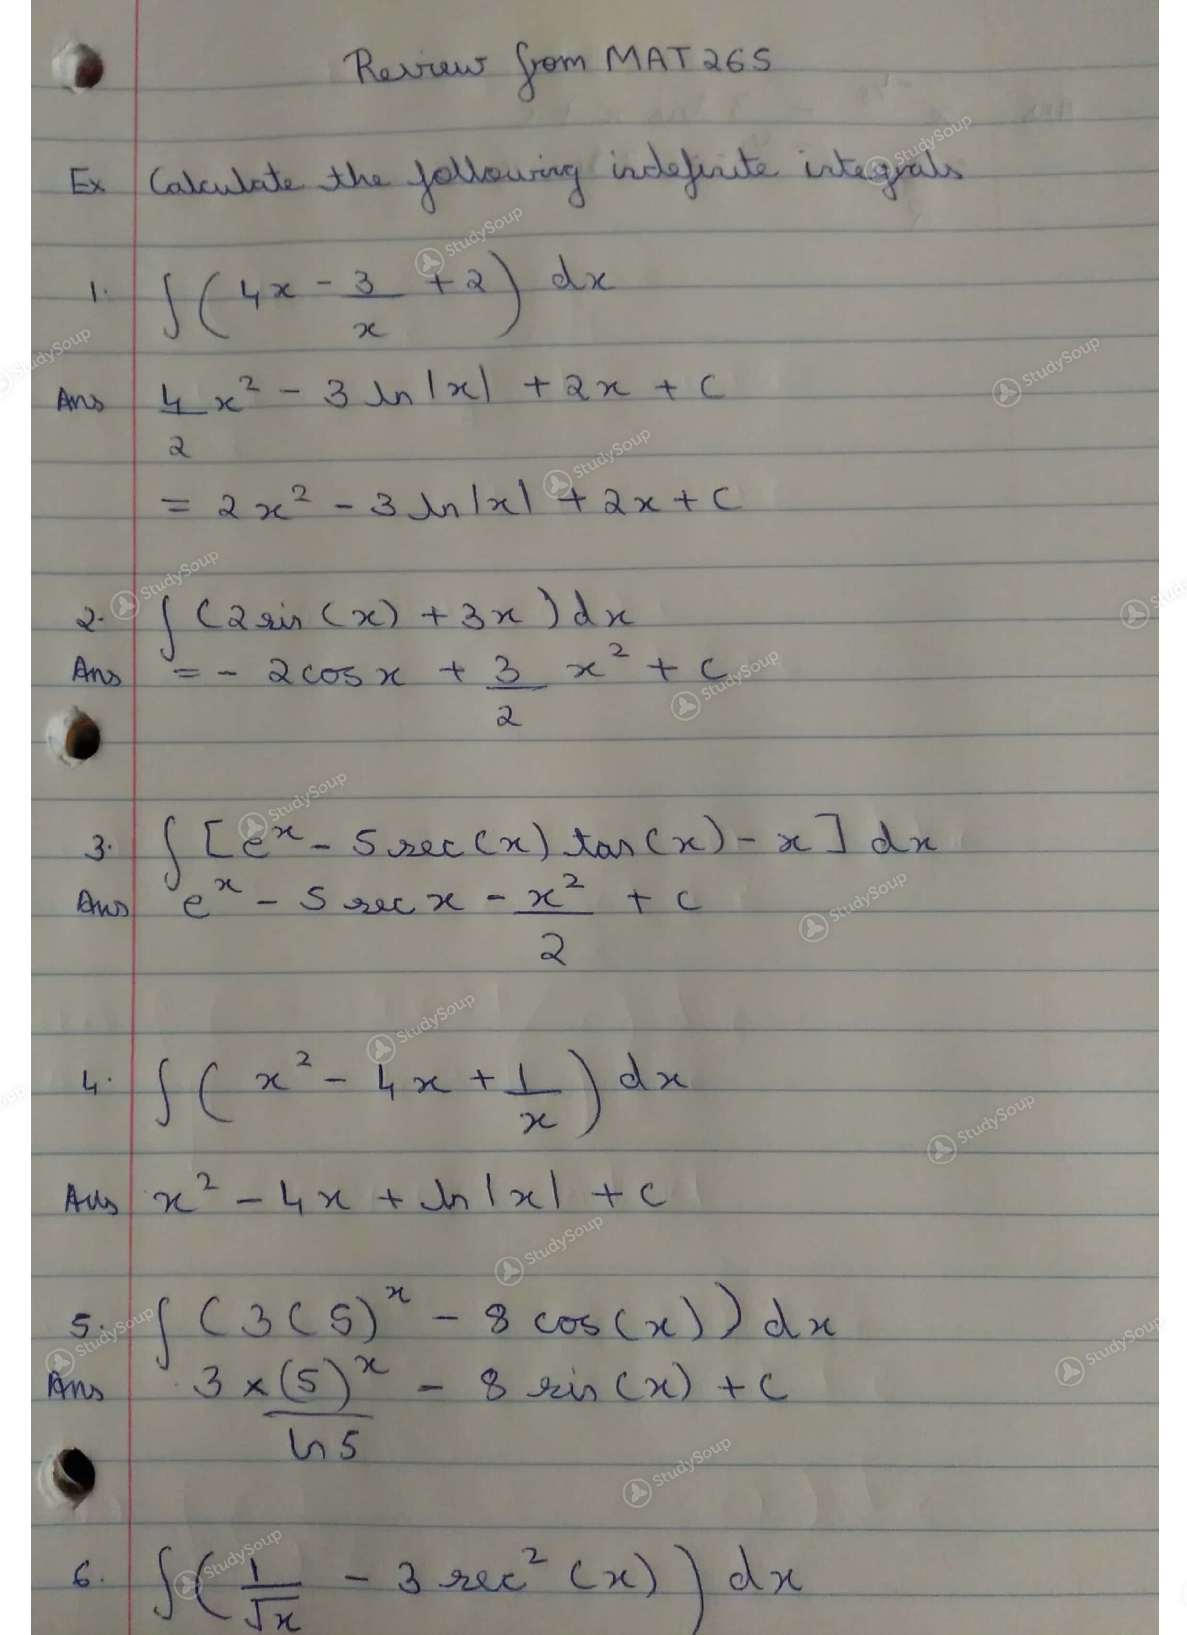 mat algebra matd answers review of guide best solutions intermediate section key exam ideas study final collection mats